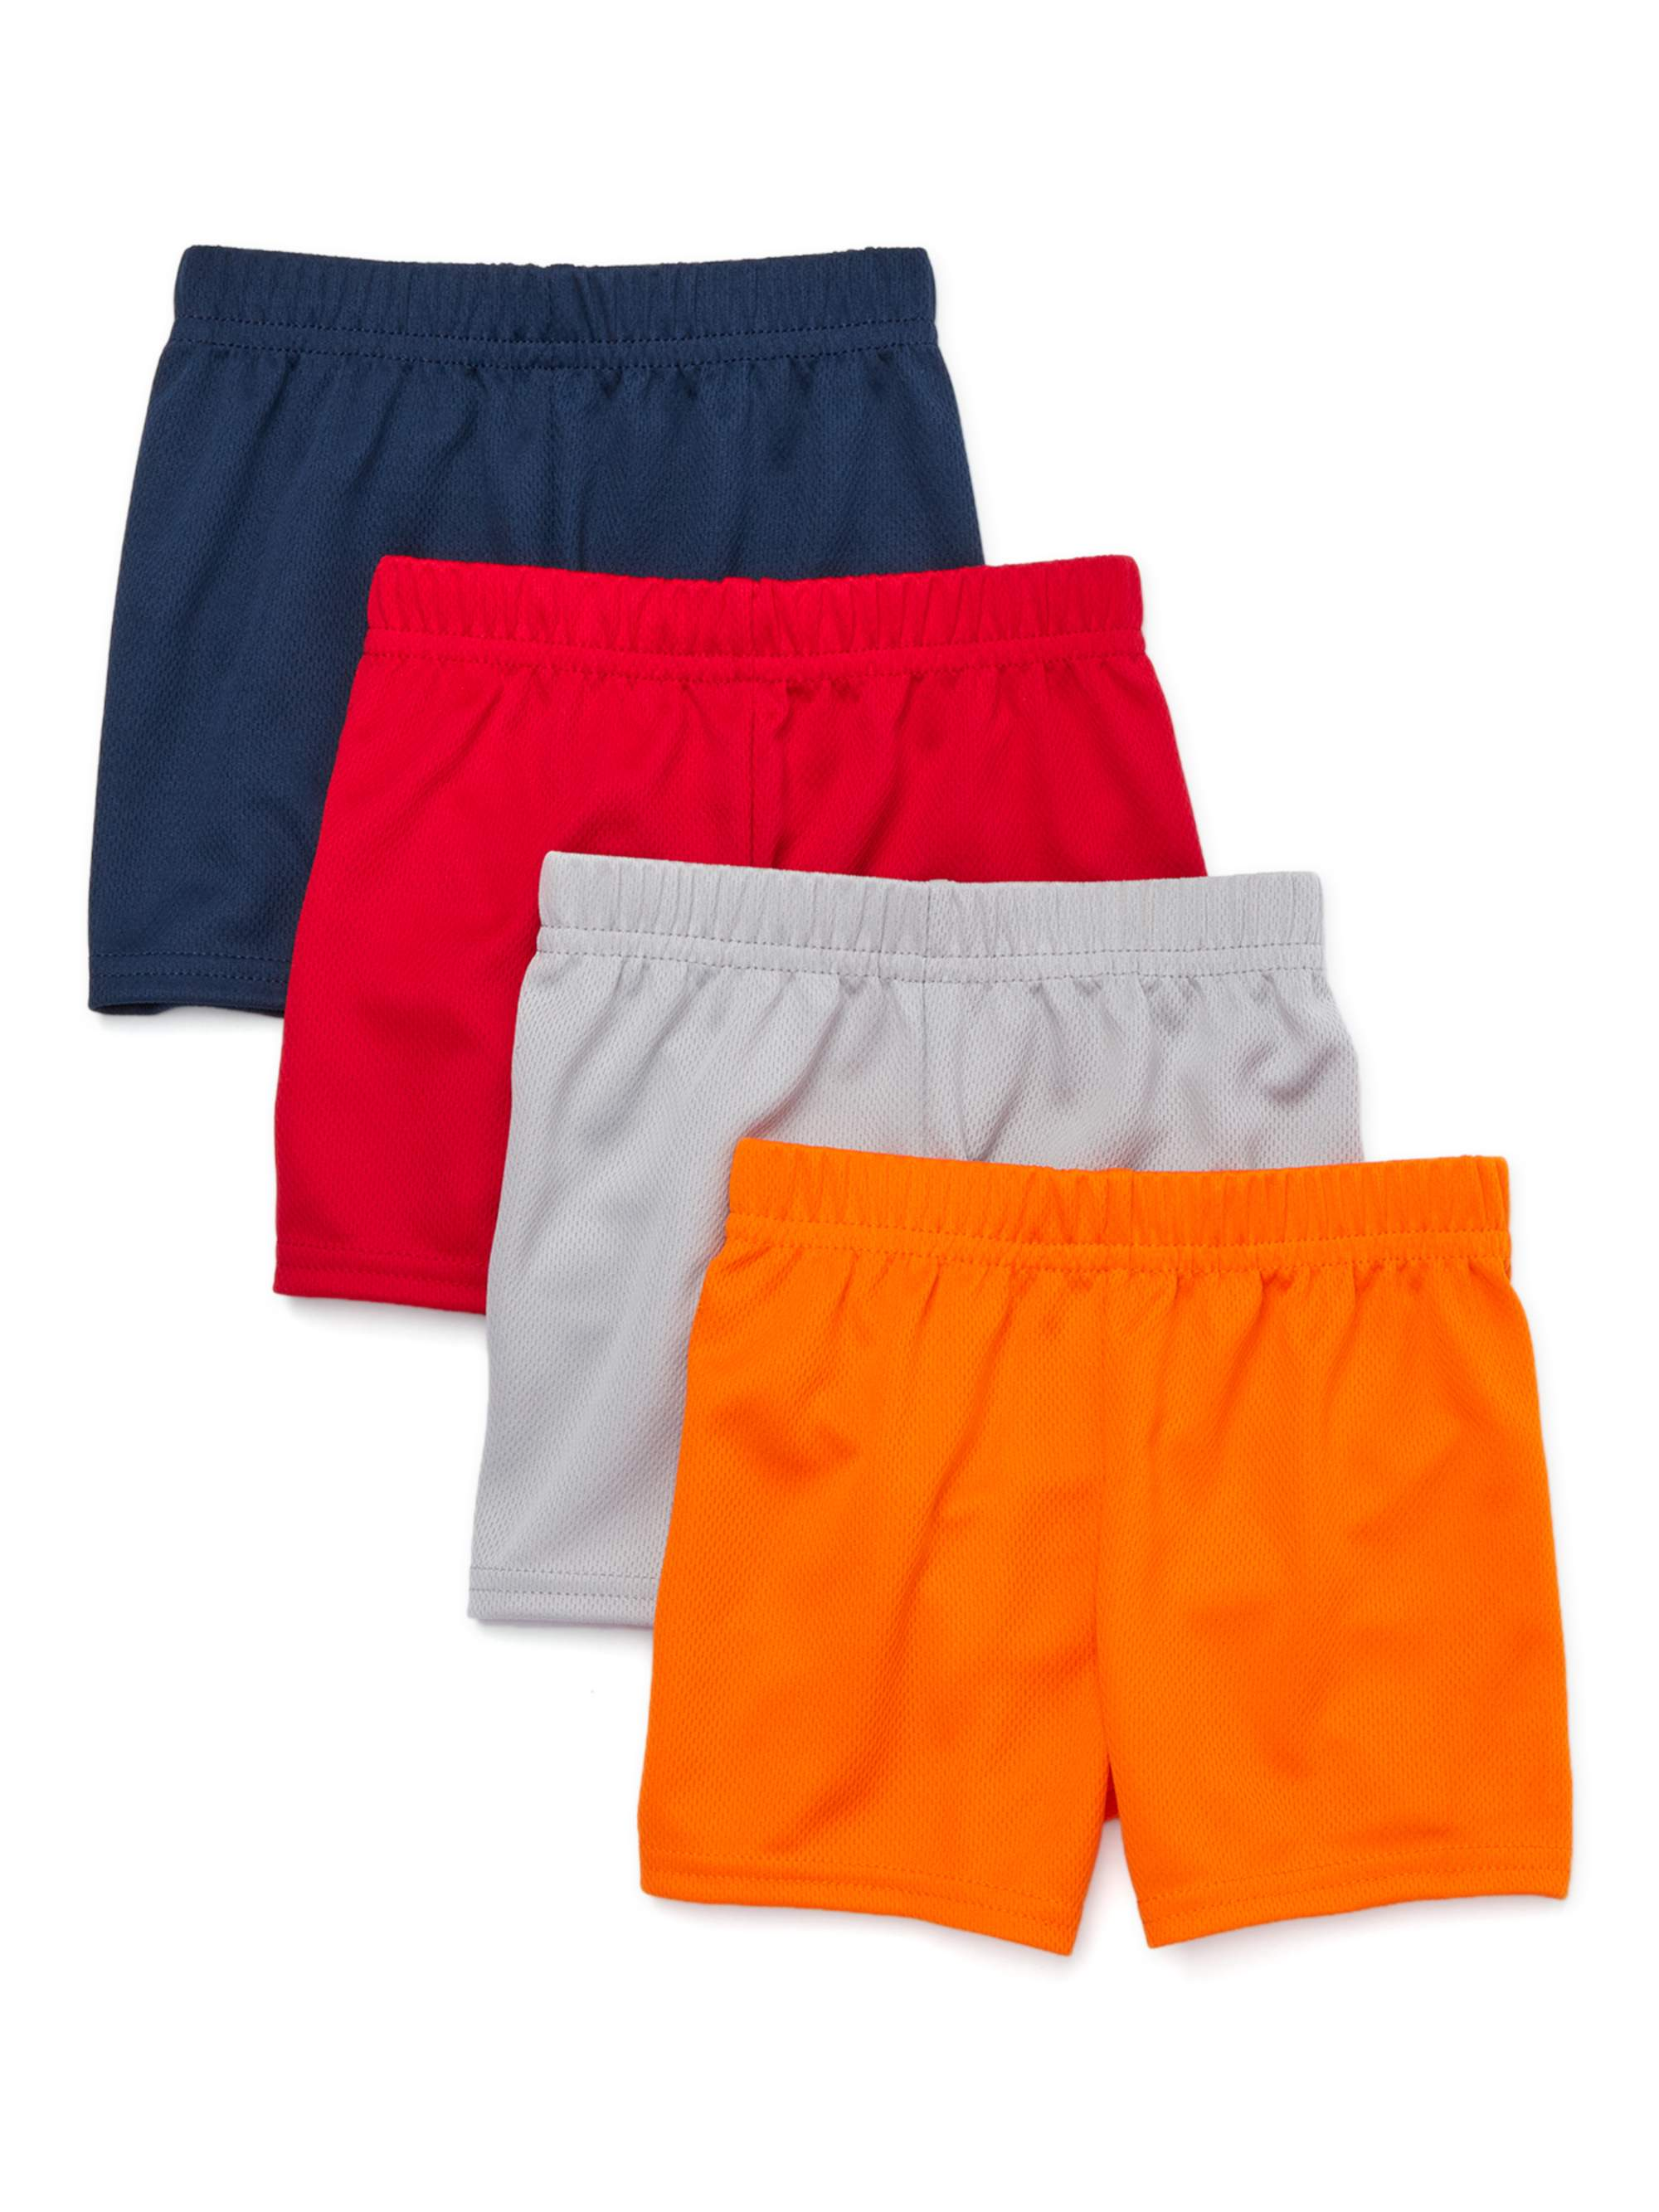 Garanimals Baby Boy Mesh Shorts Multi-Pack, 4pc